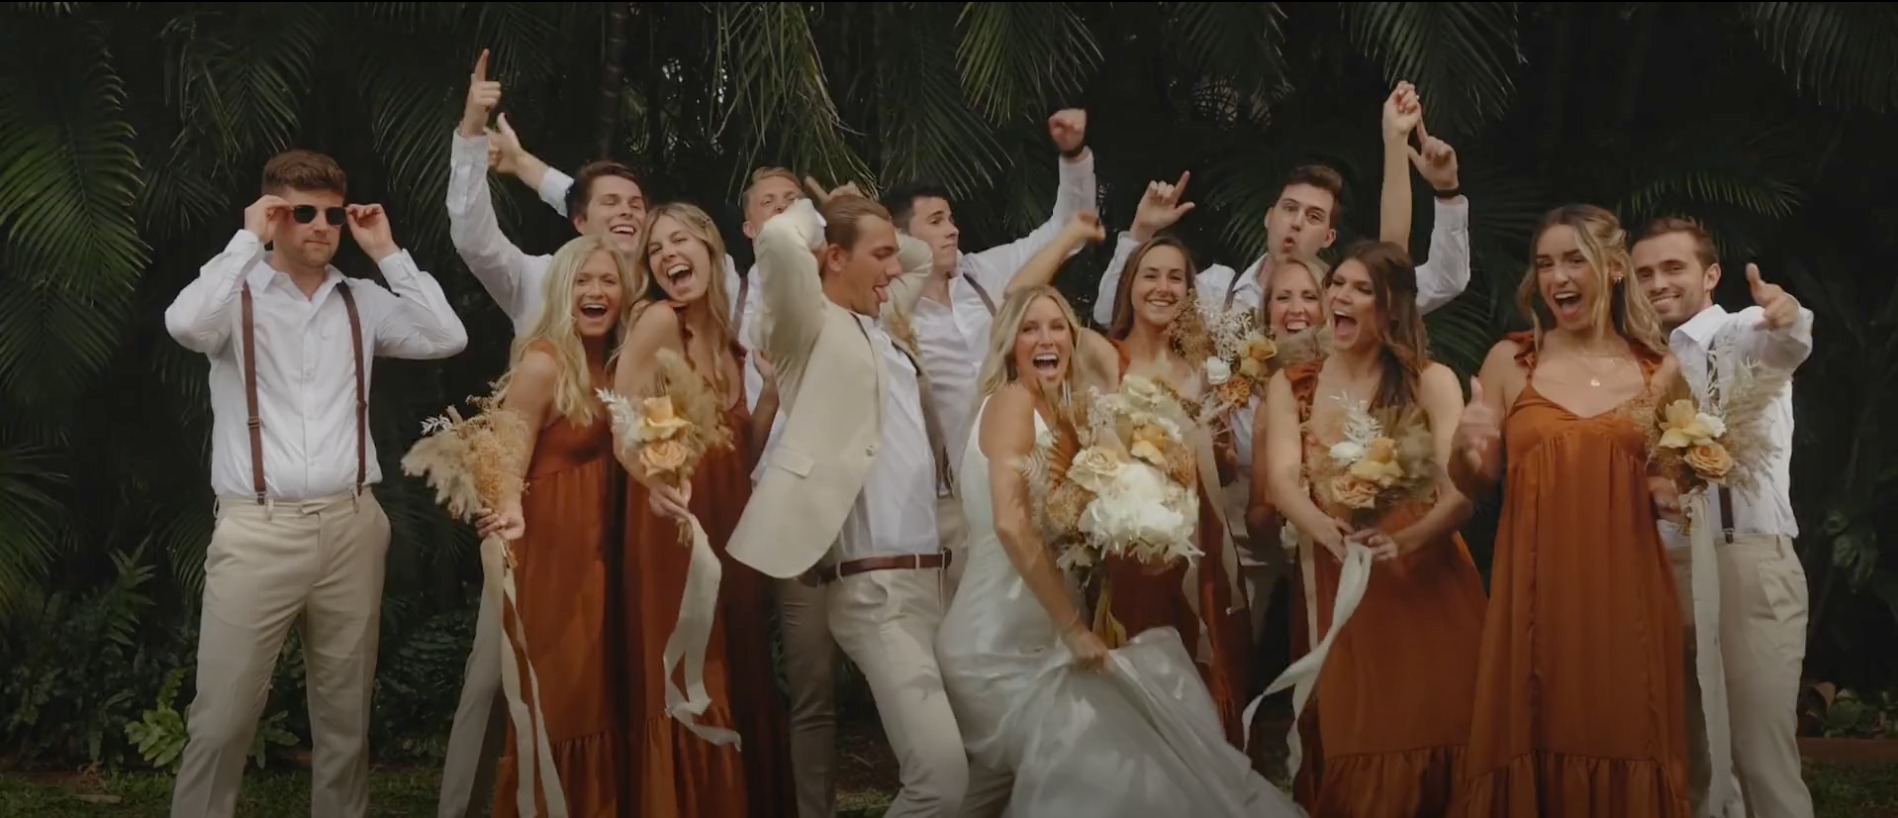 Wedding party partying in terracotta wedding dresses and khaki suits